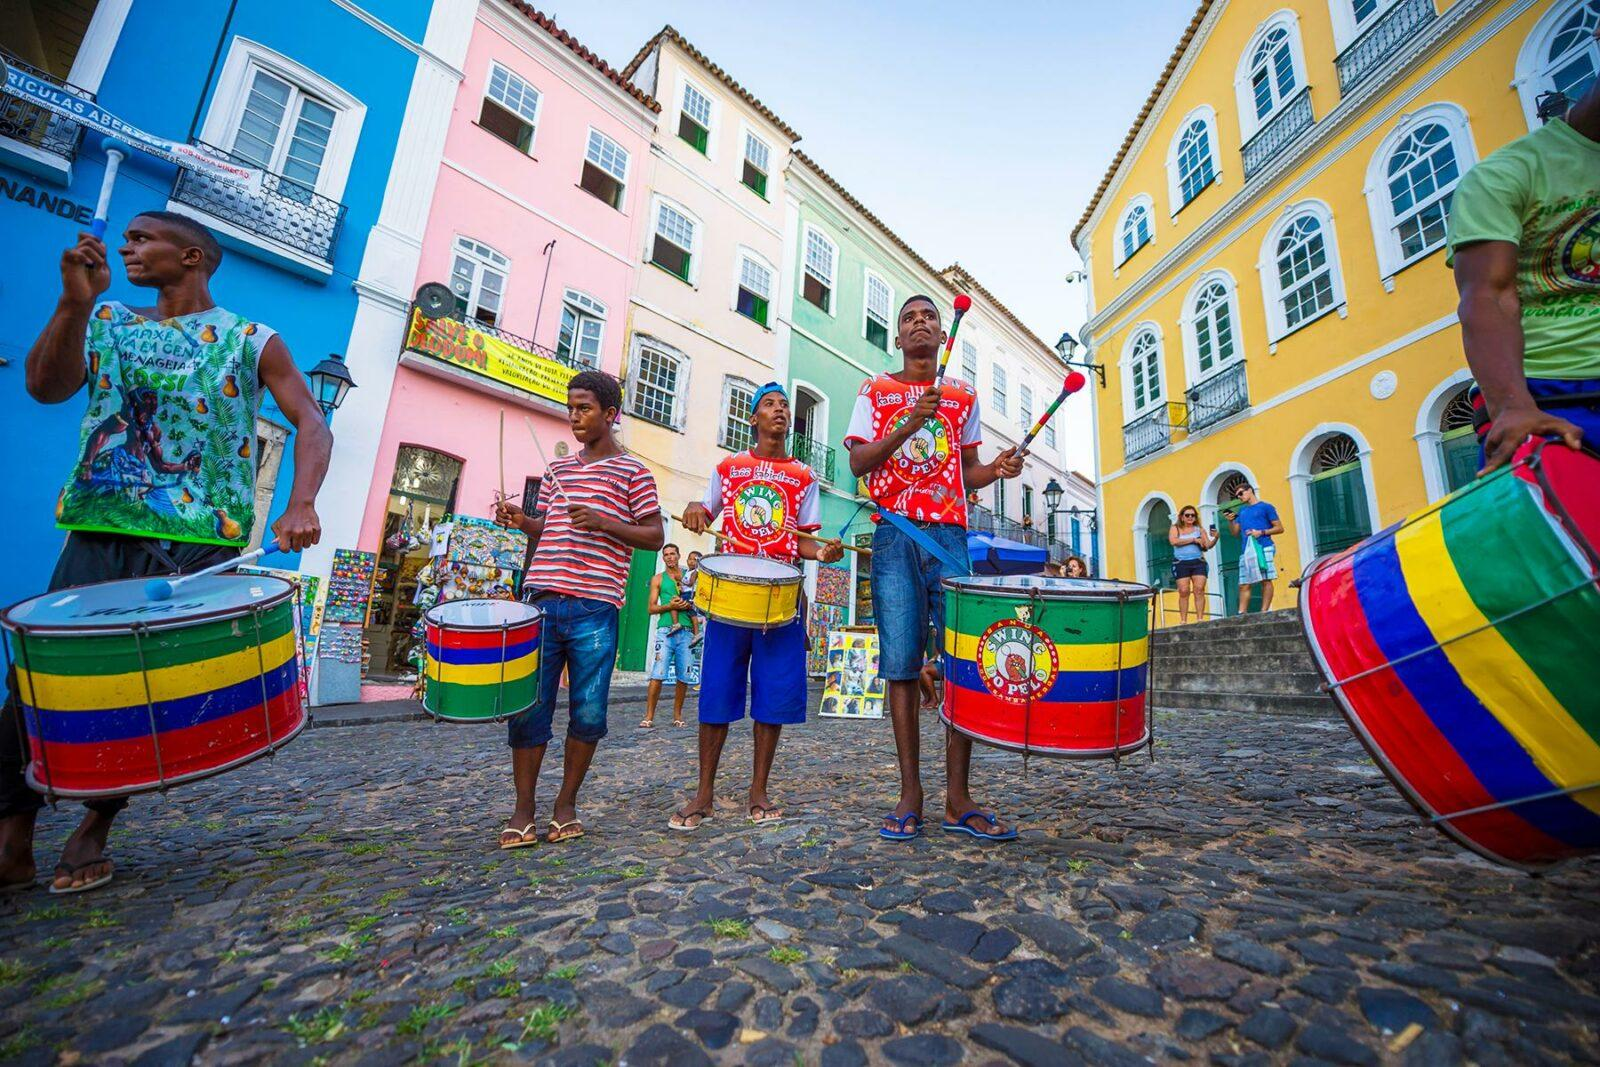 Forget Rio: Explore One of Brazil's Most Underrated Cities